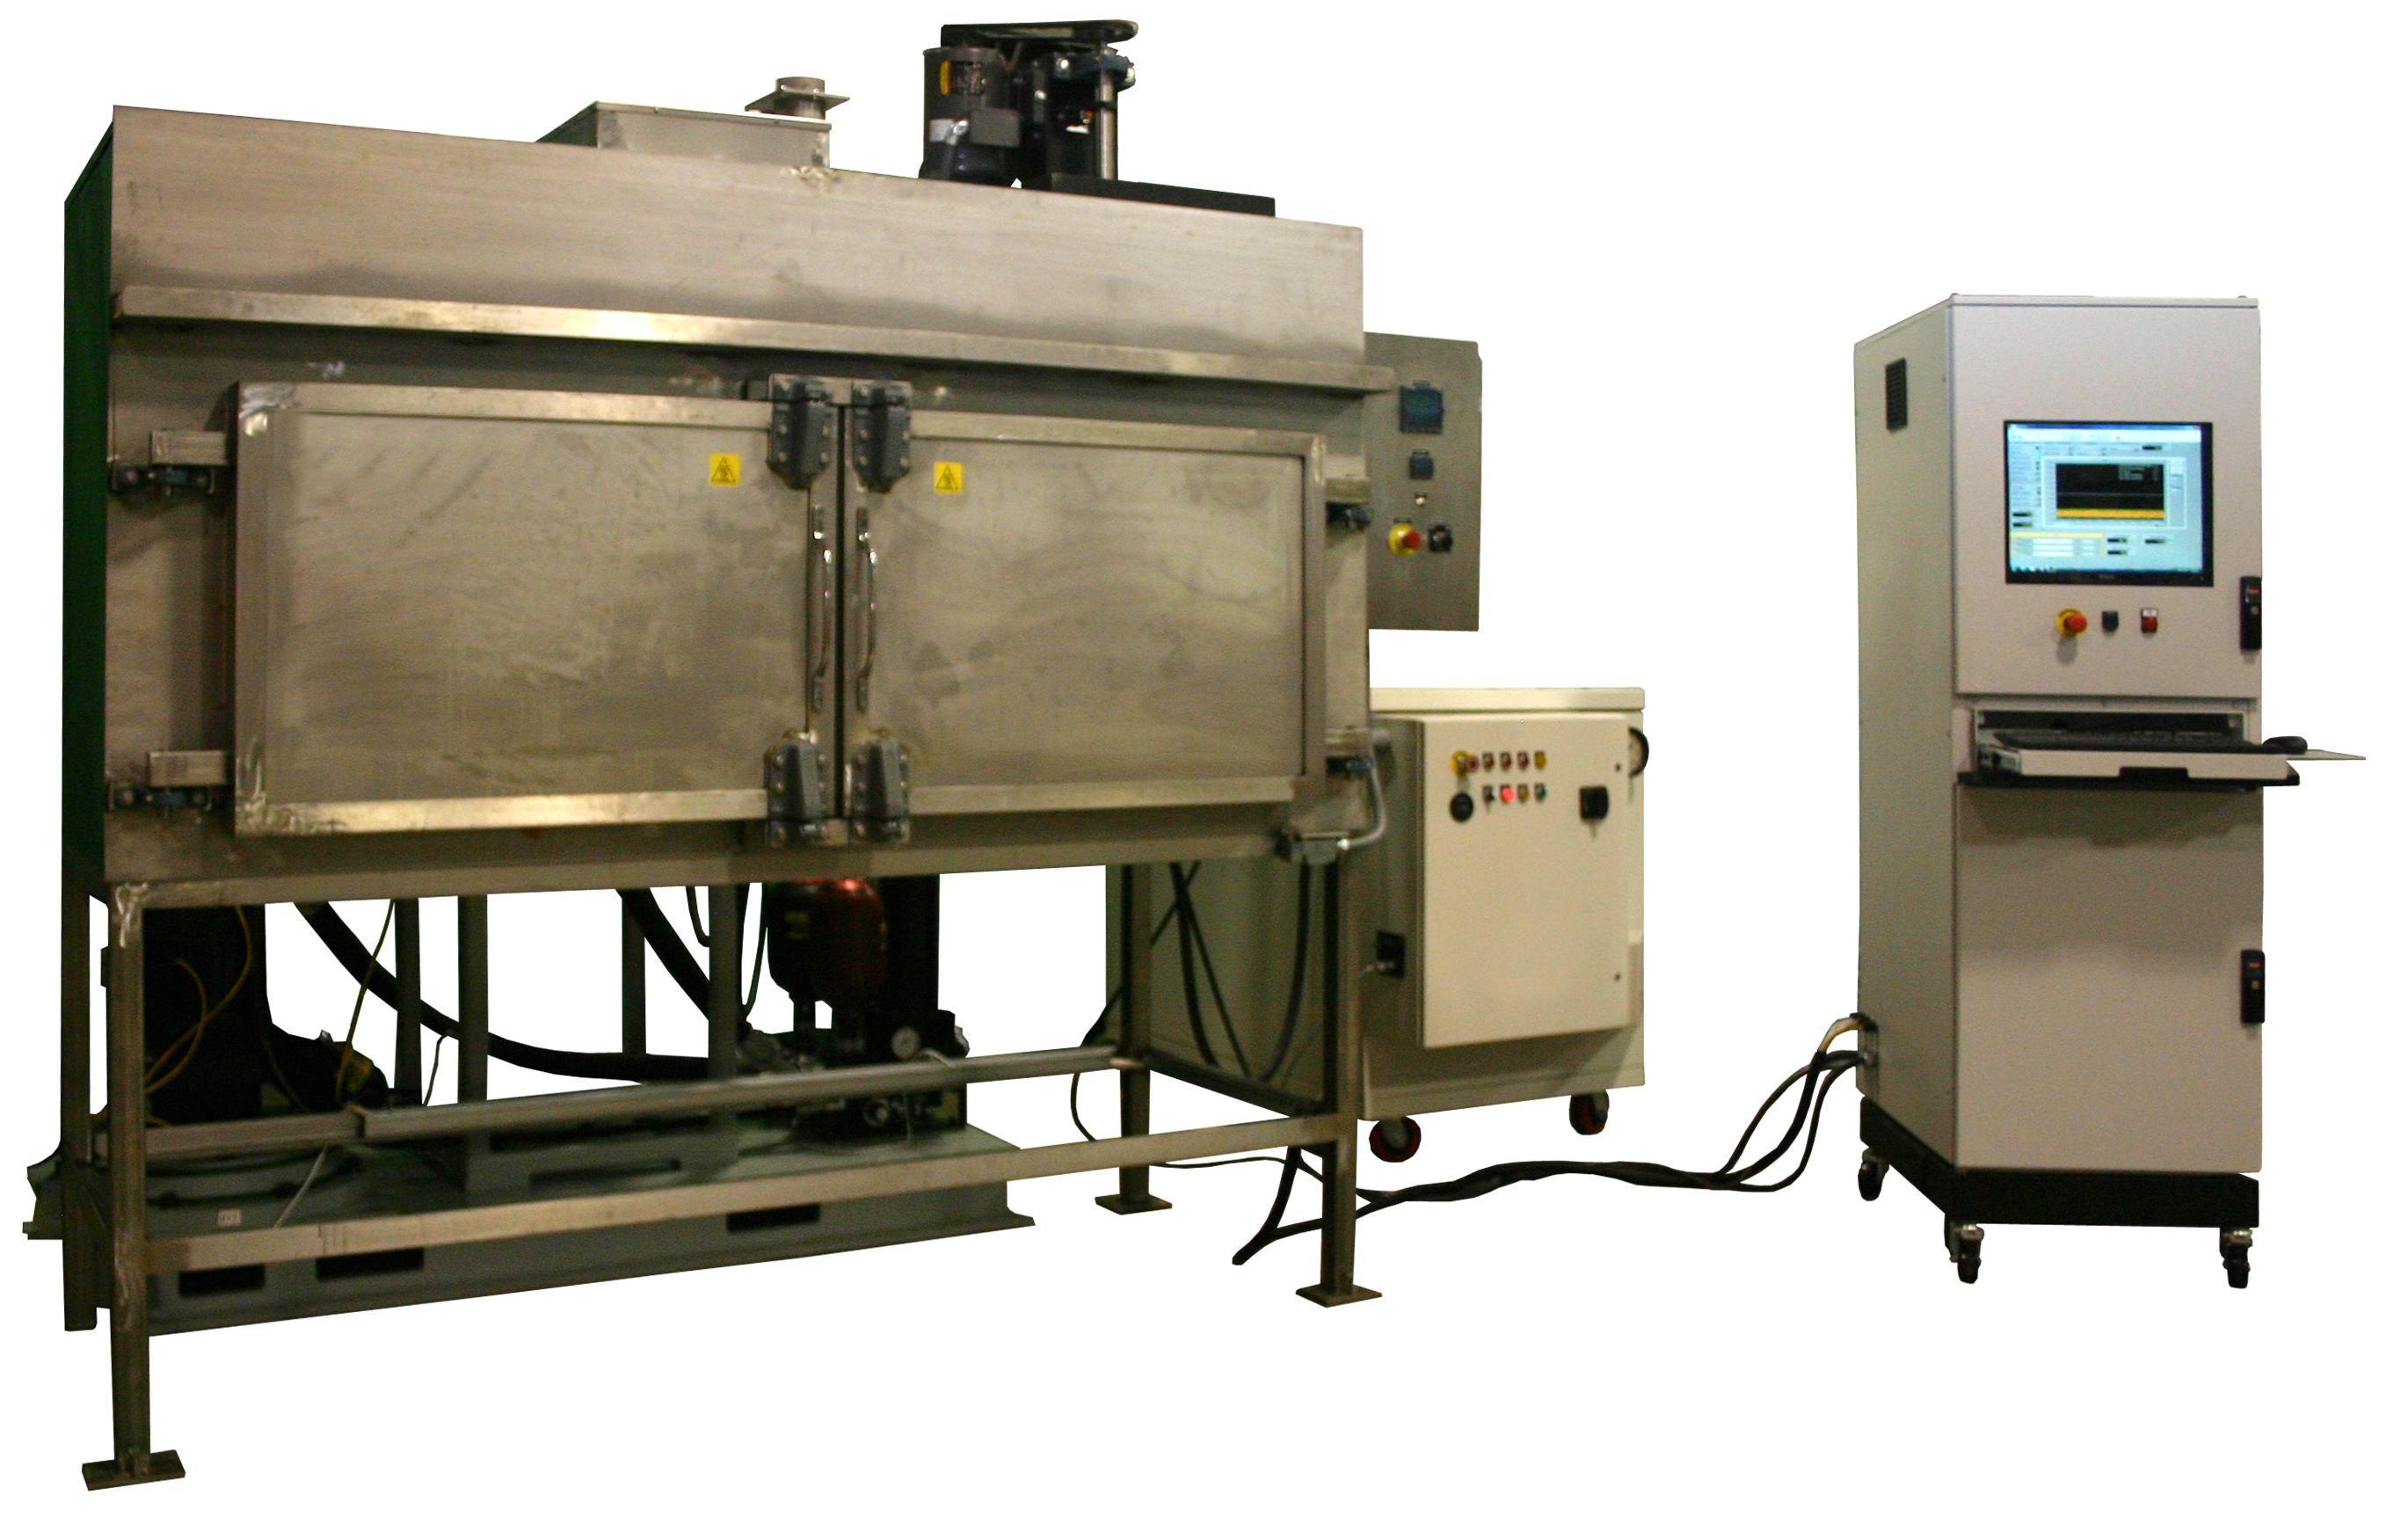 Impulse test stand